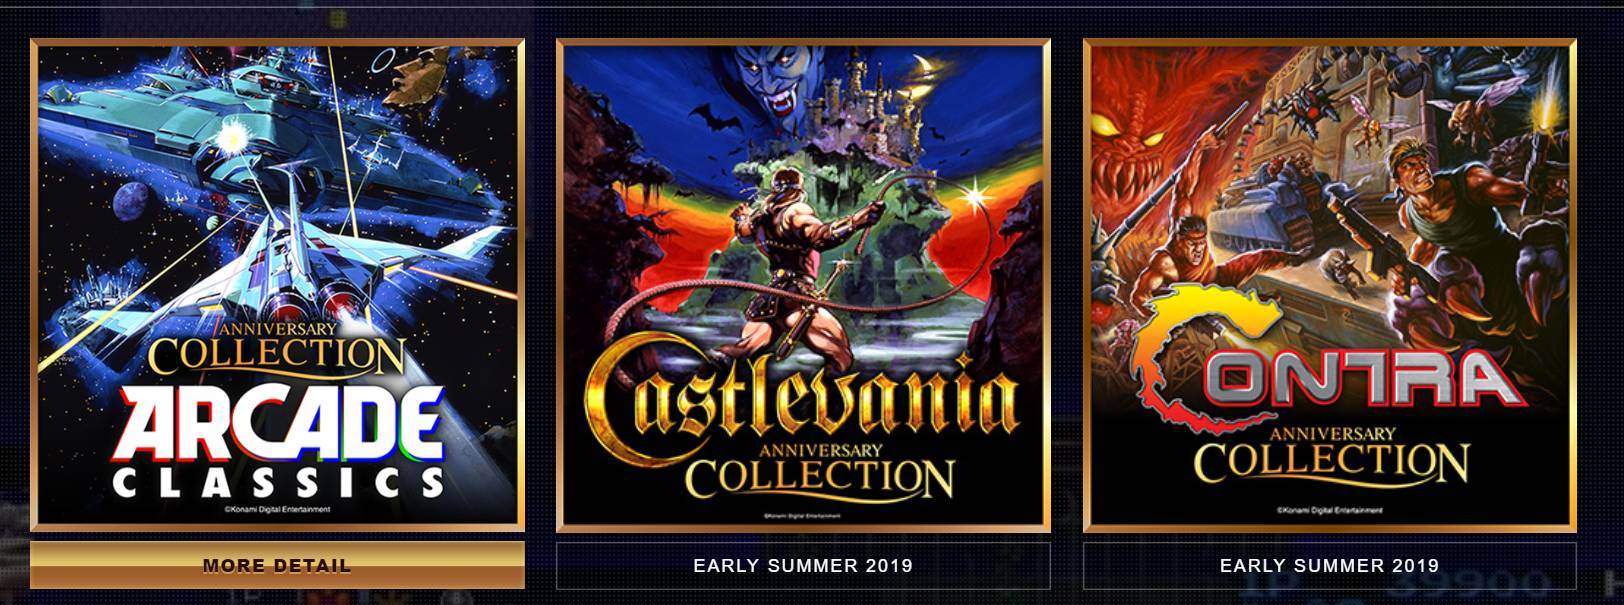 Konami Anniversary Collection, Arcade Classics, Castlevania Anniversary Collection, Contra Anniversary Collection